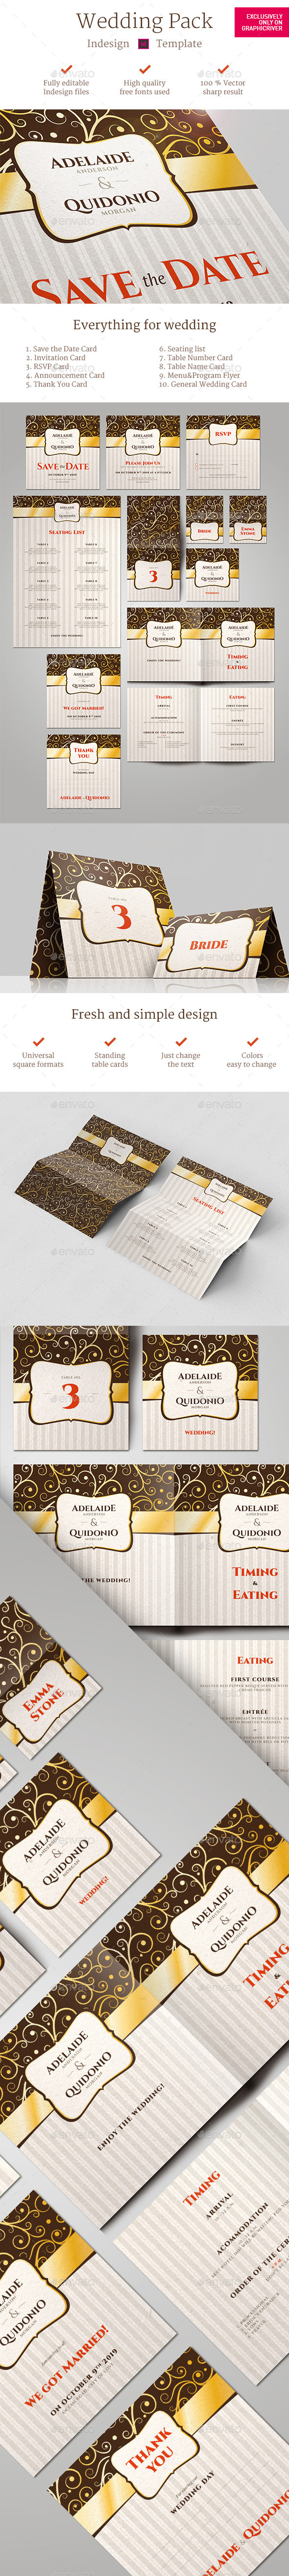 GraphicRiver Gold Ornament Wedding Pack Indesign Template 11424757